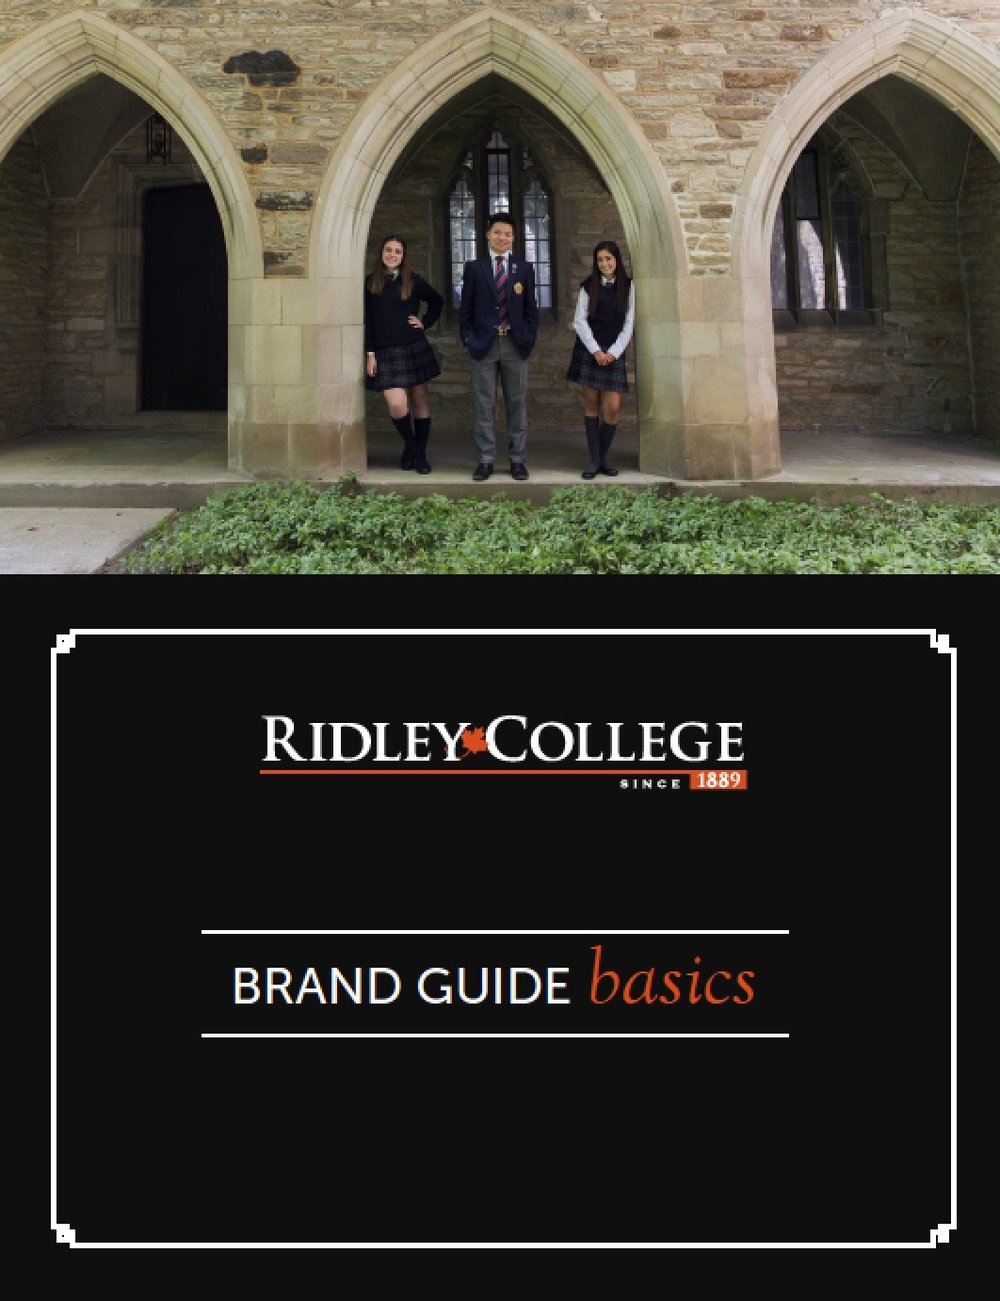 establish your school's brand guide before initiating an engagement strategy.